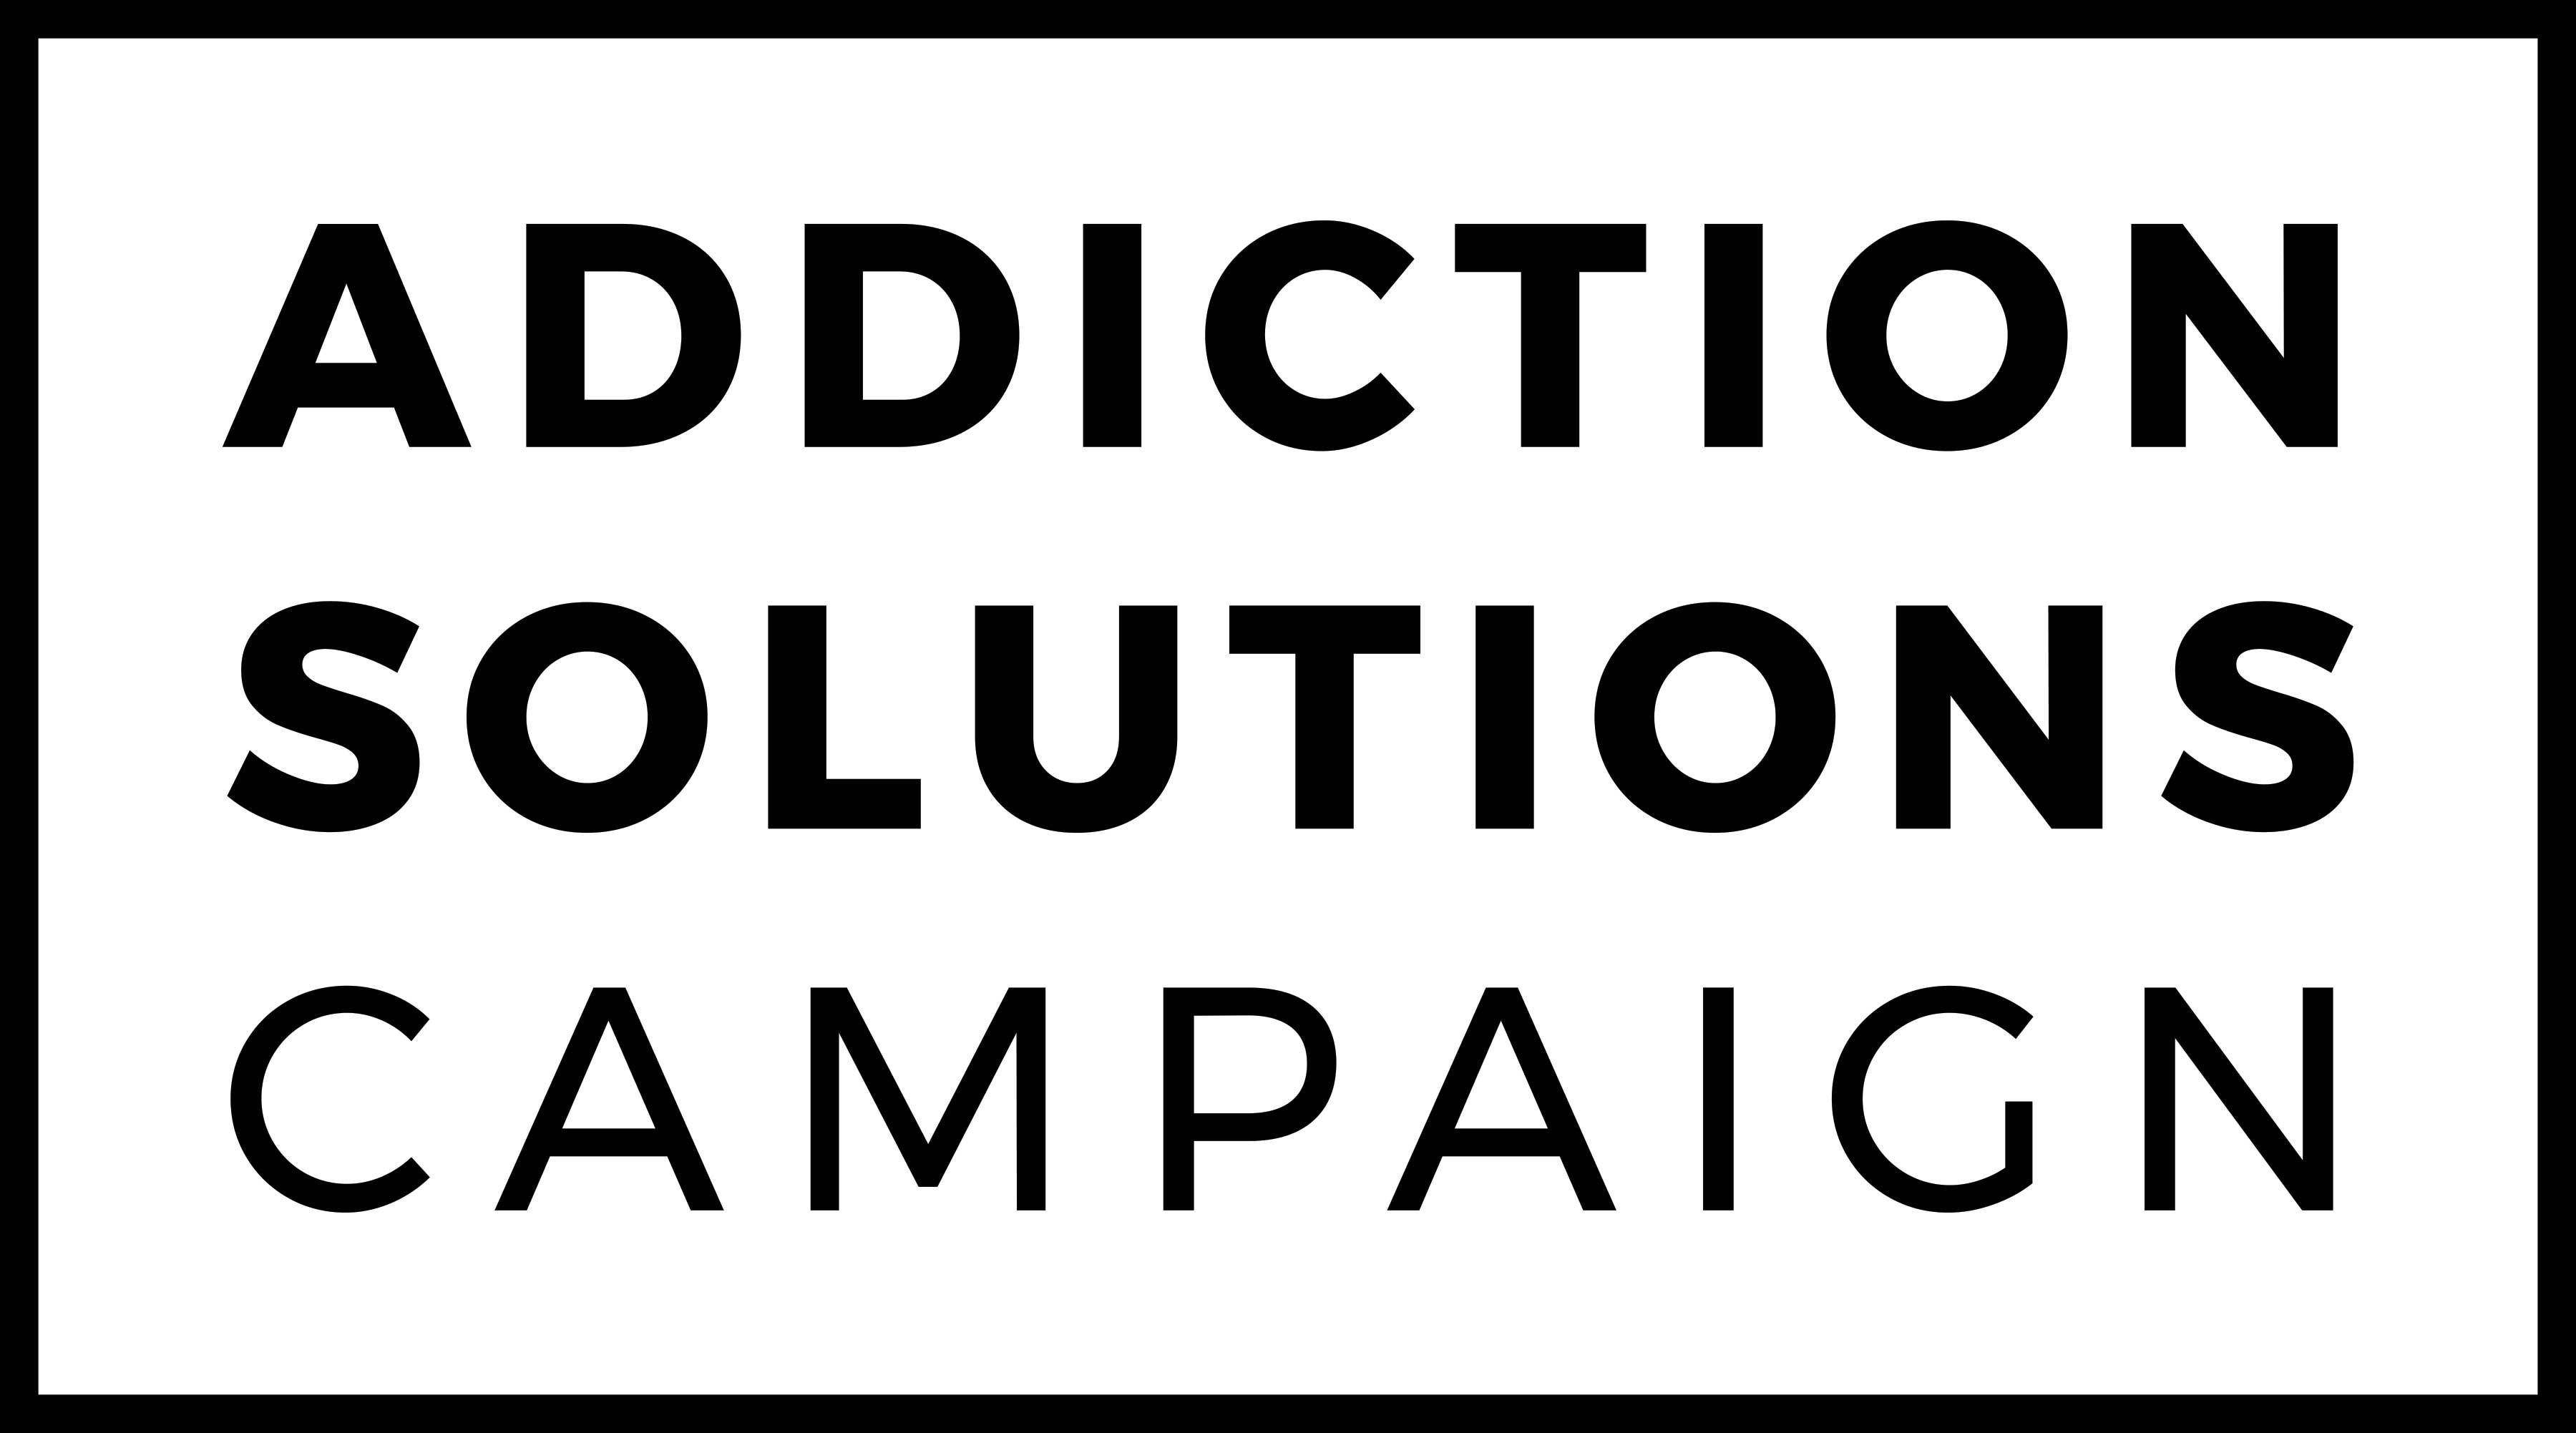 Addiction Solutions Campaign